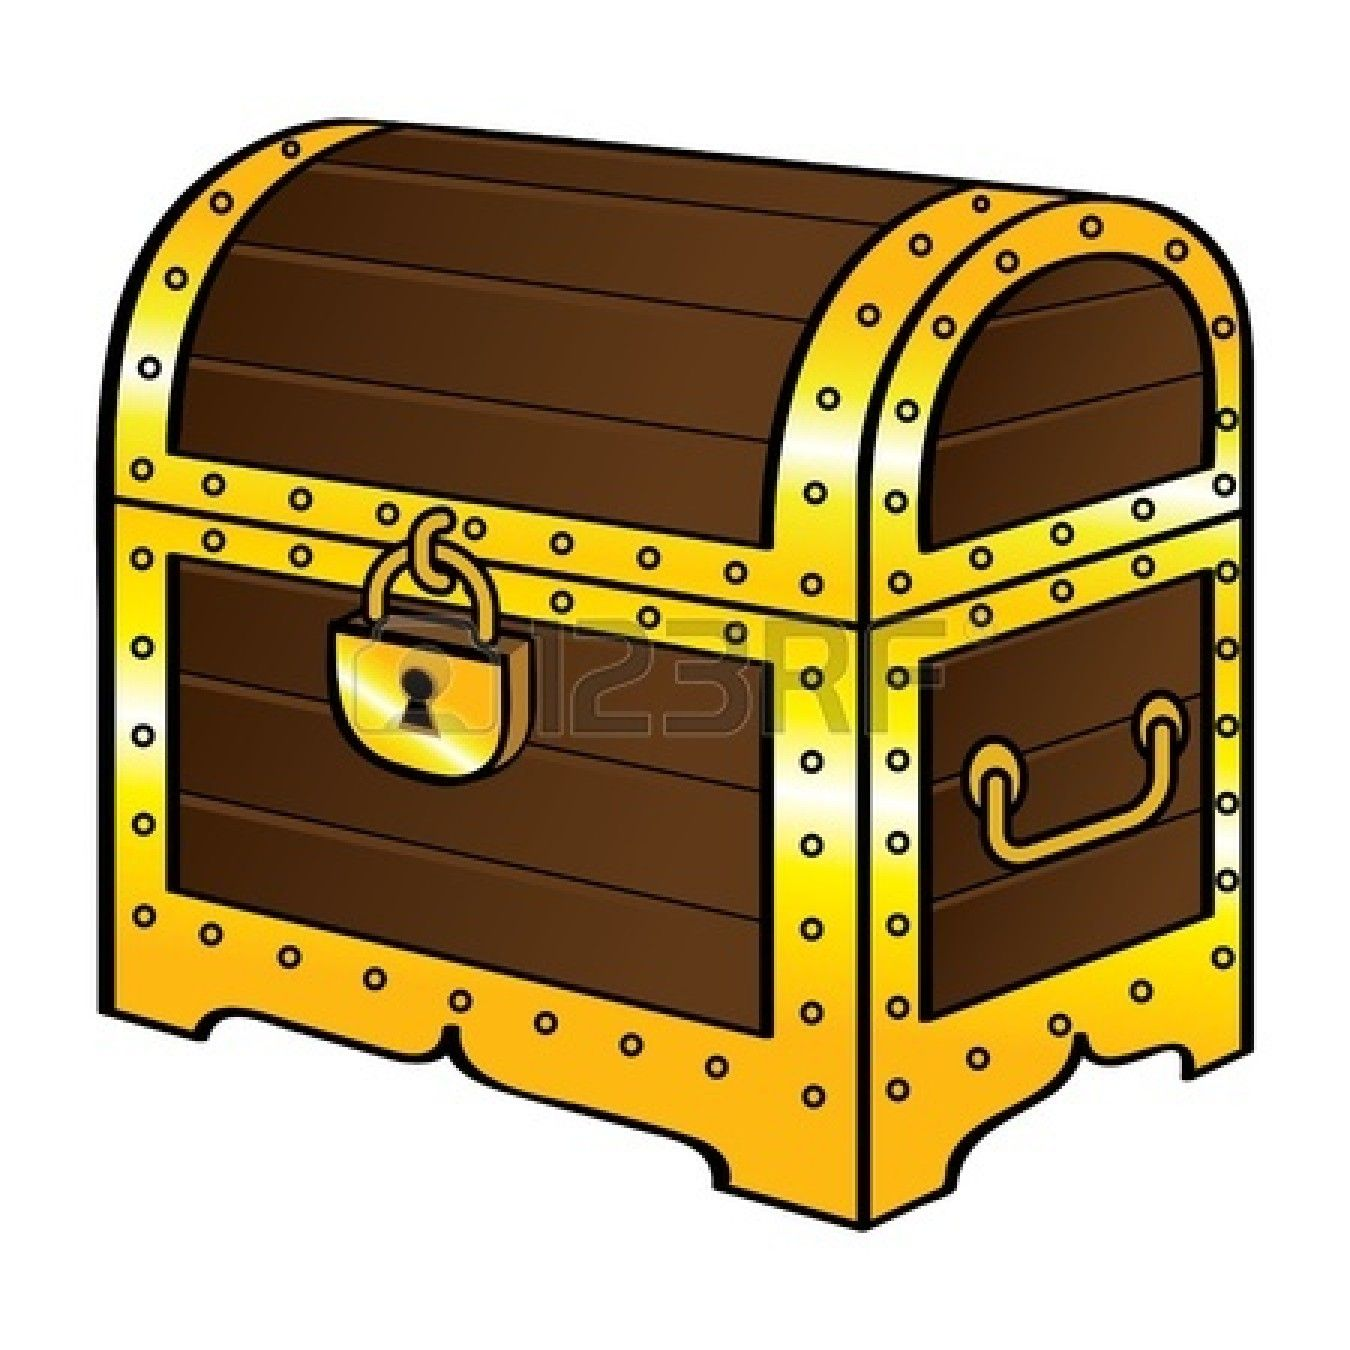 Treasure Chest Stock Vector Illustration And Royalty Free.